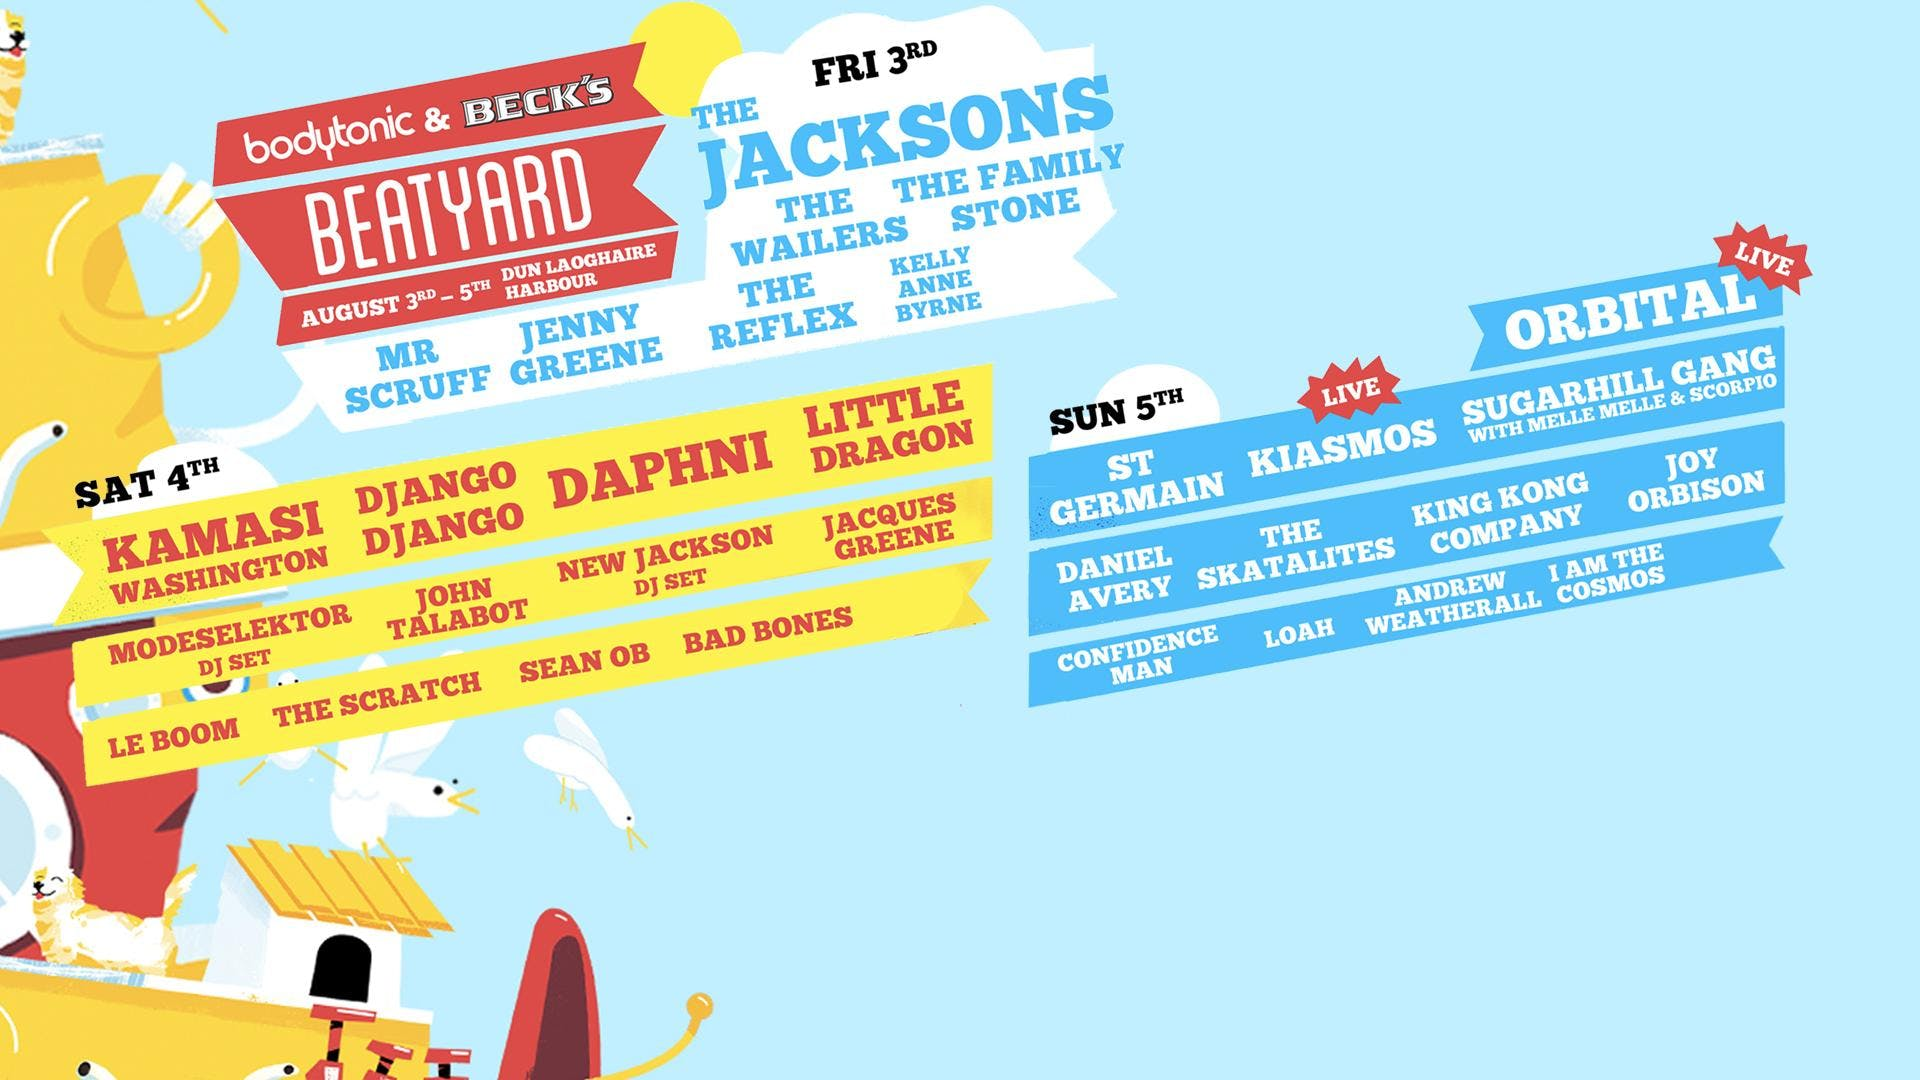 Bodytonic present Beatyard 2018 : 3 day festival in Dublin